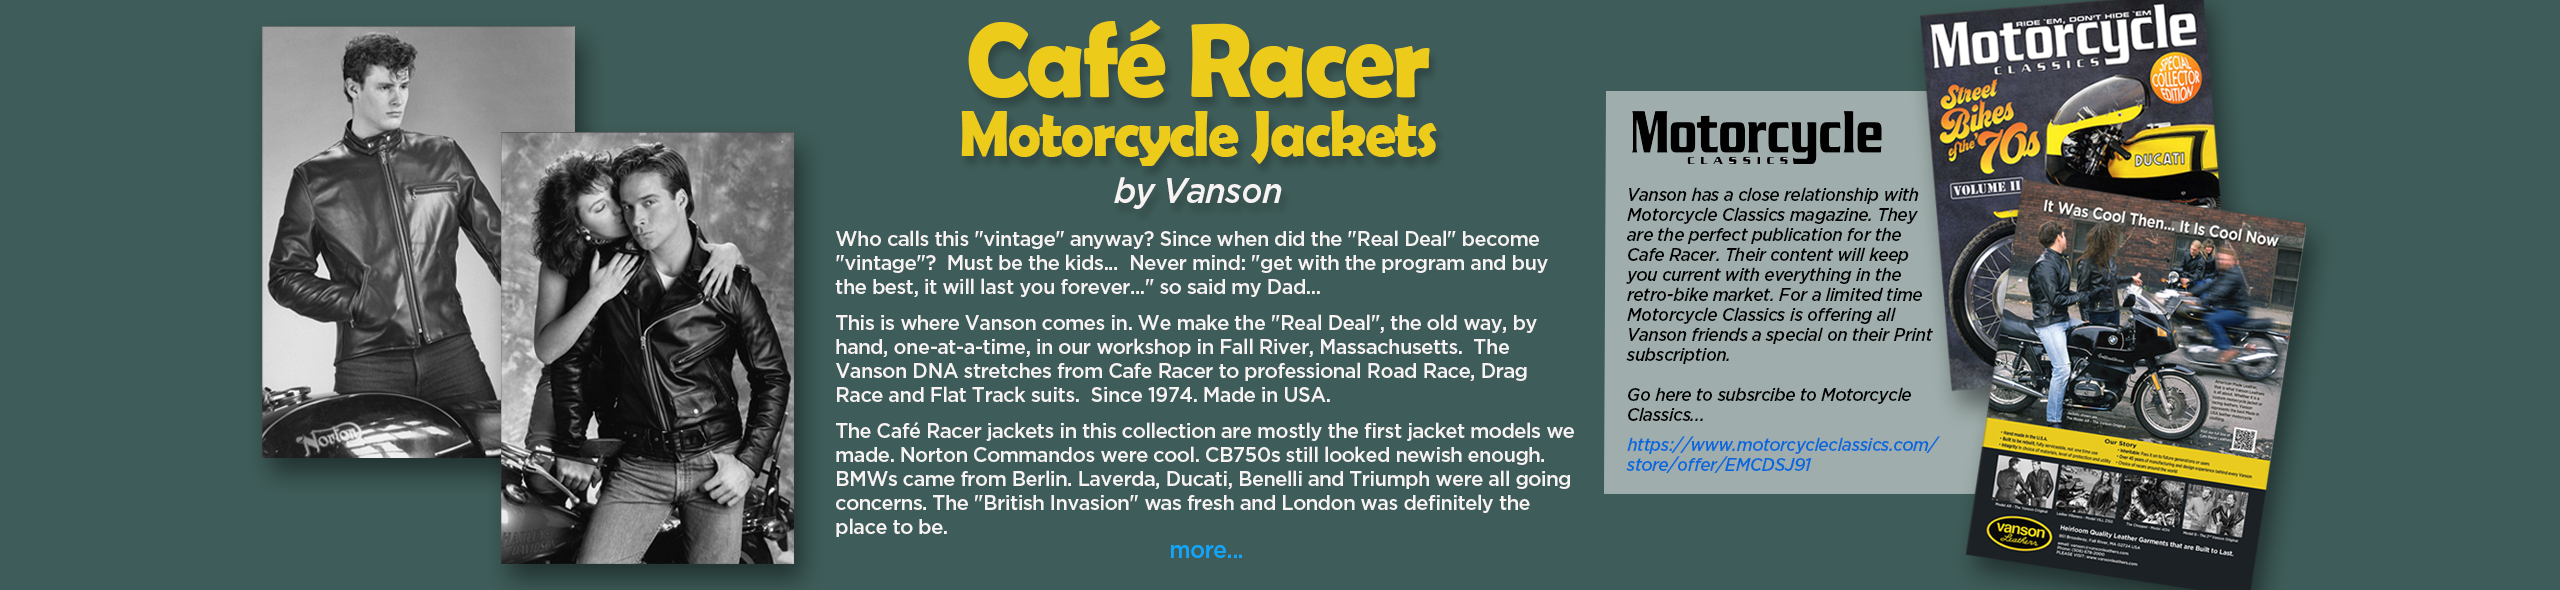 Café Racer Motorcycle Jackets by Vanson